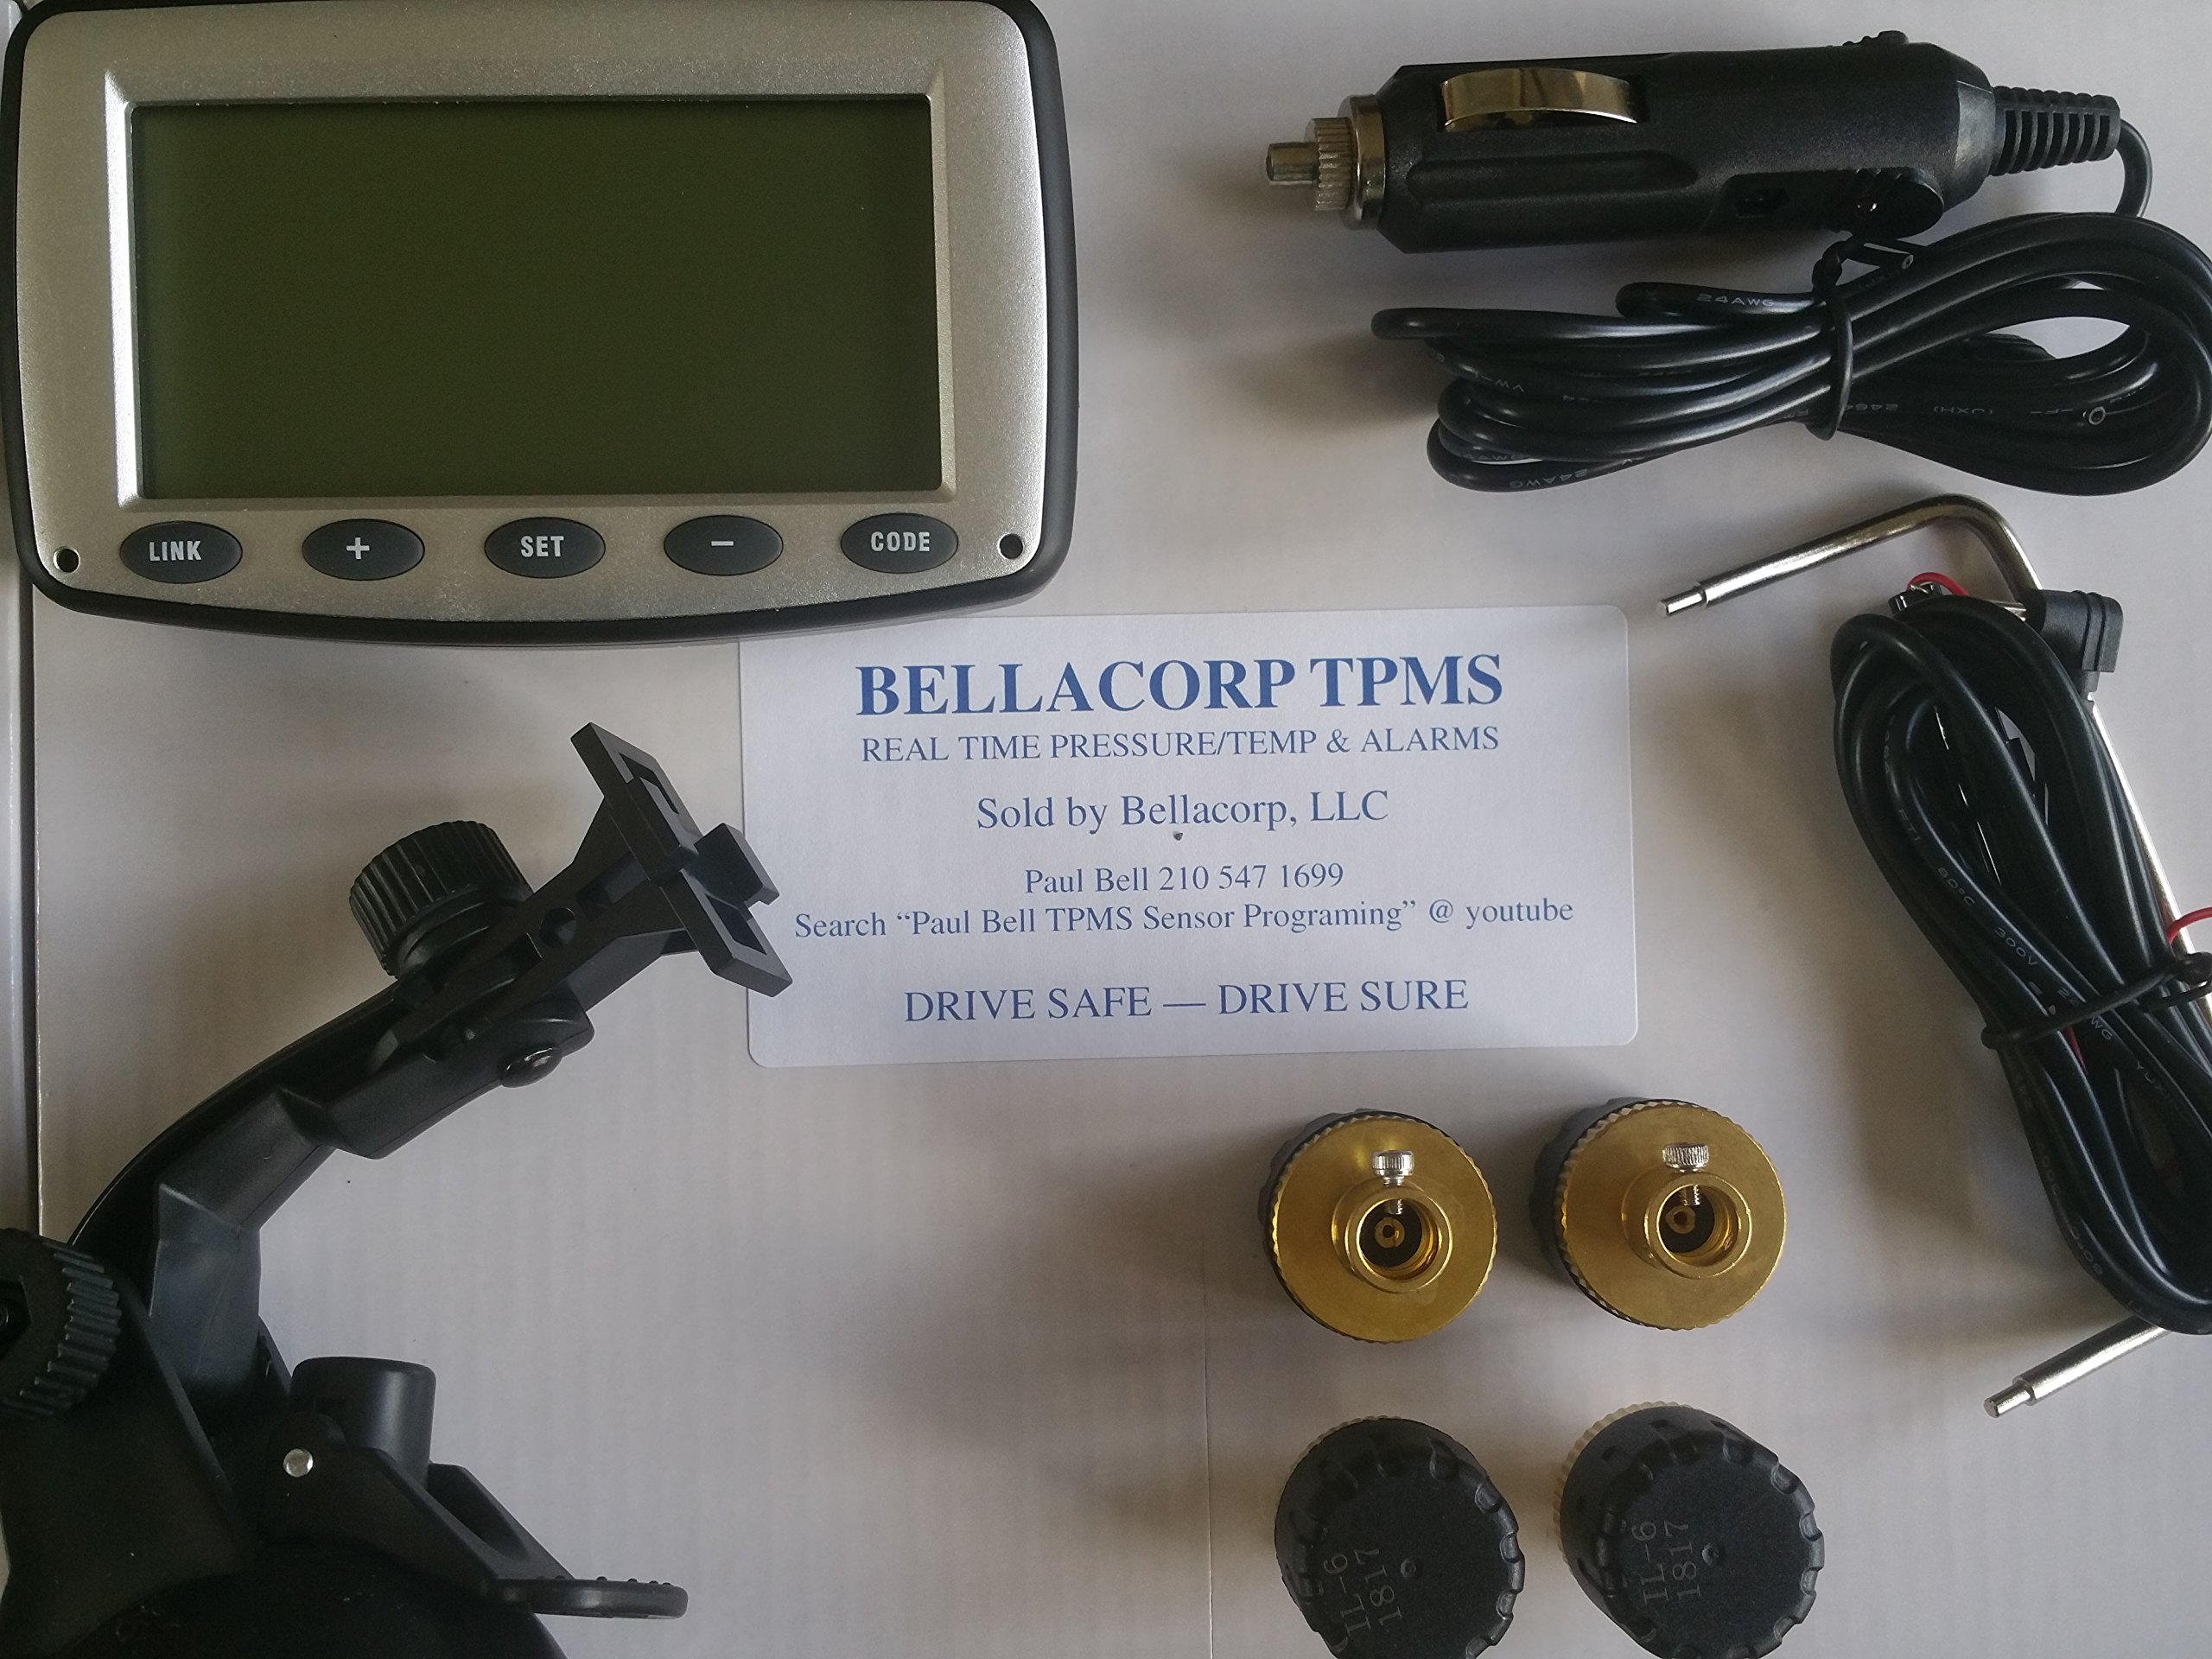 3. Bellacorp Tire Pressure Monitoring System